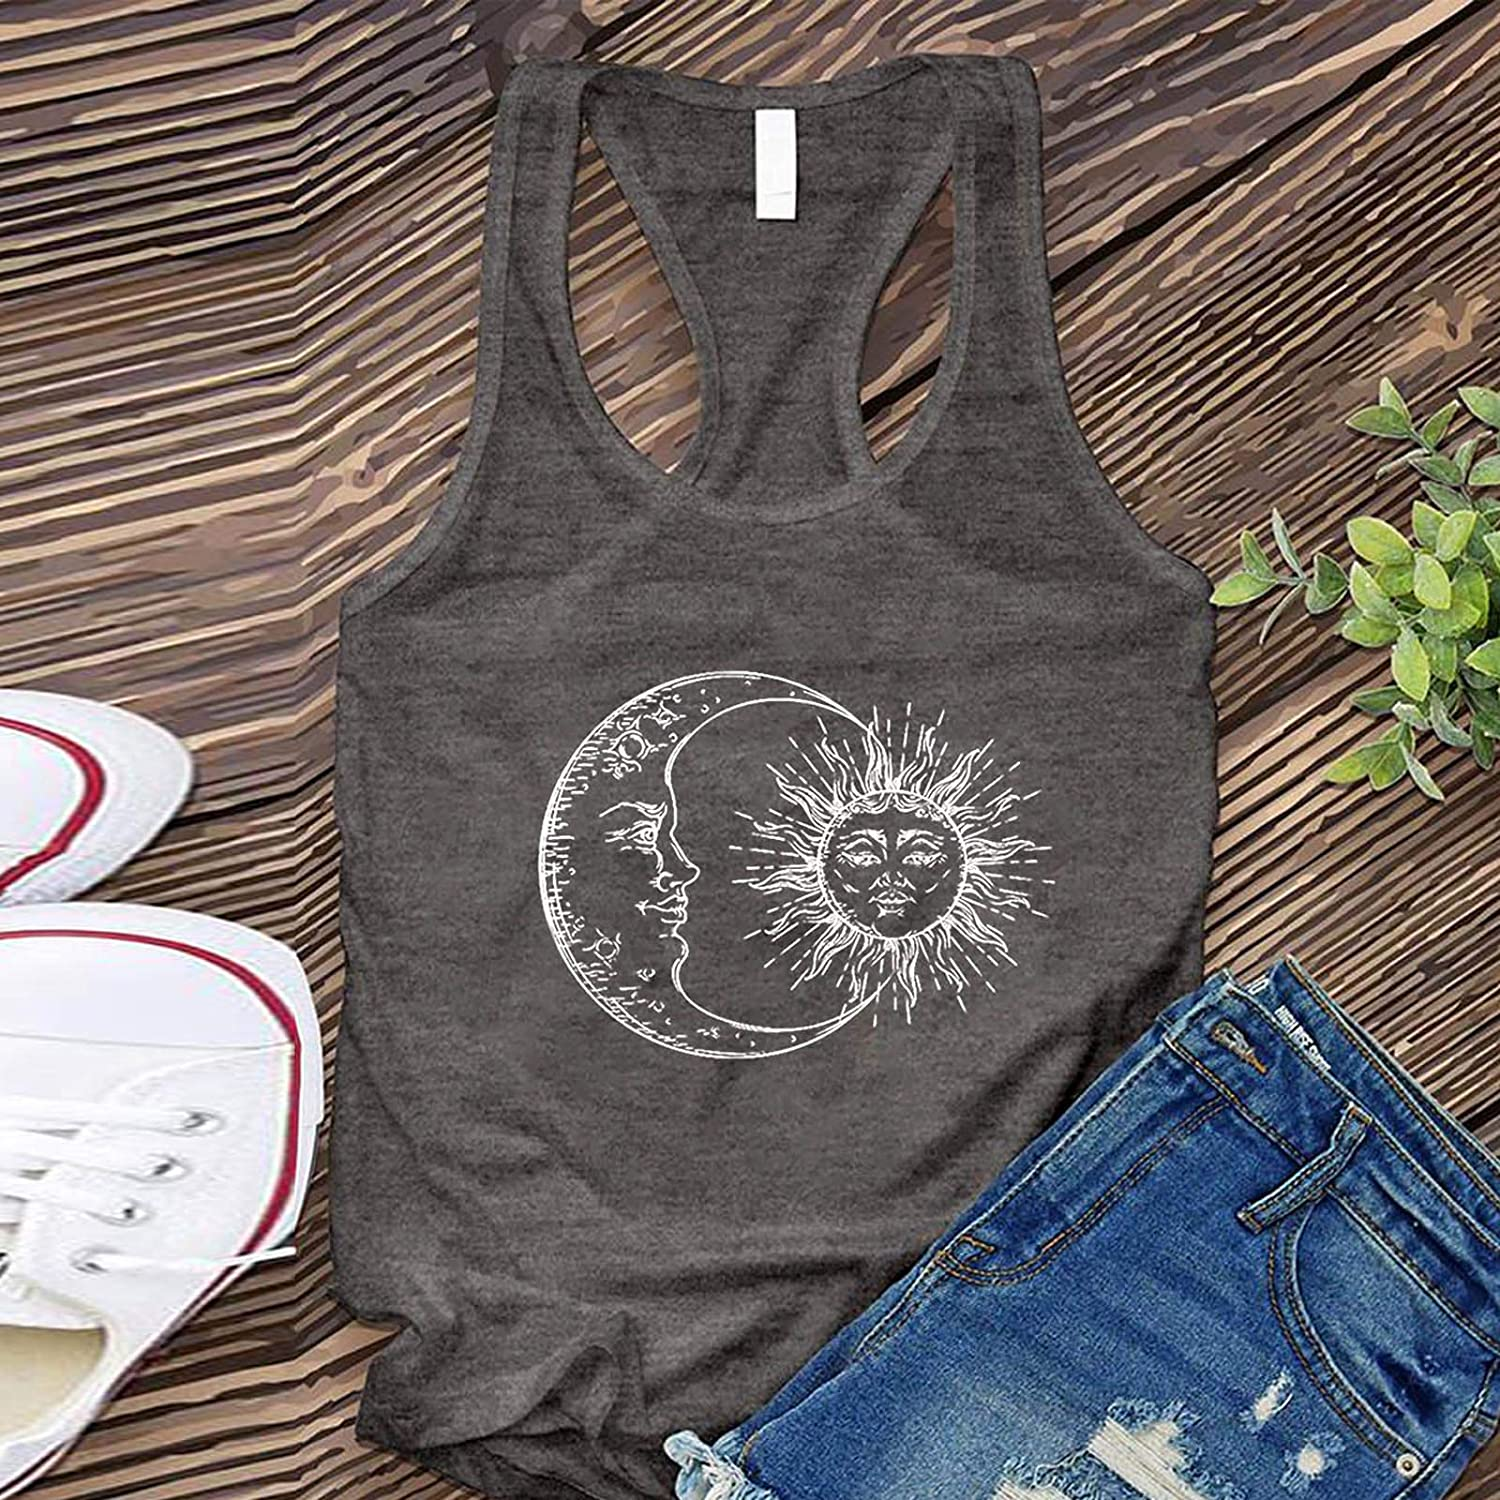 Casual Racerback Tank Tops for Women,Round Neck Sun Print Blouse Sleeveless Loose fit Summer Vests Streetwear